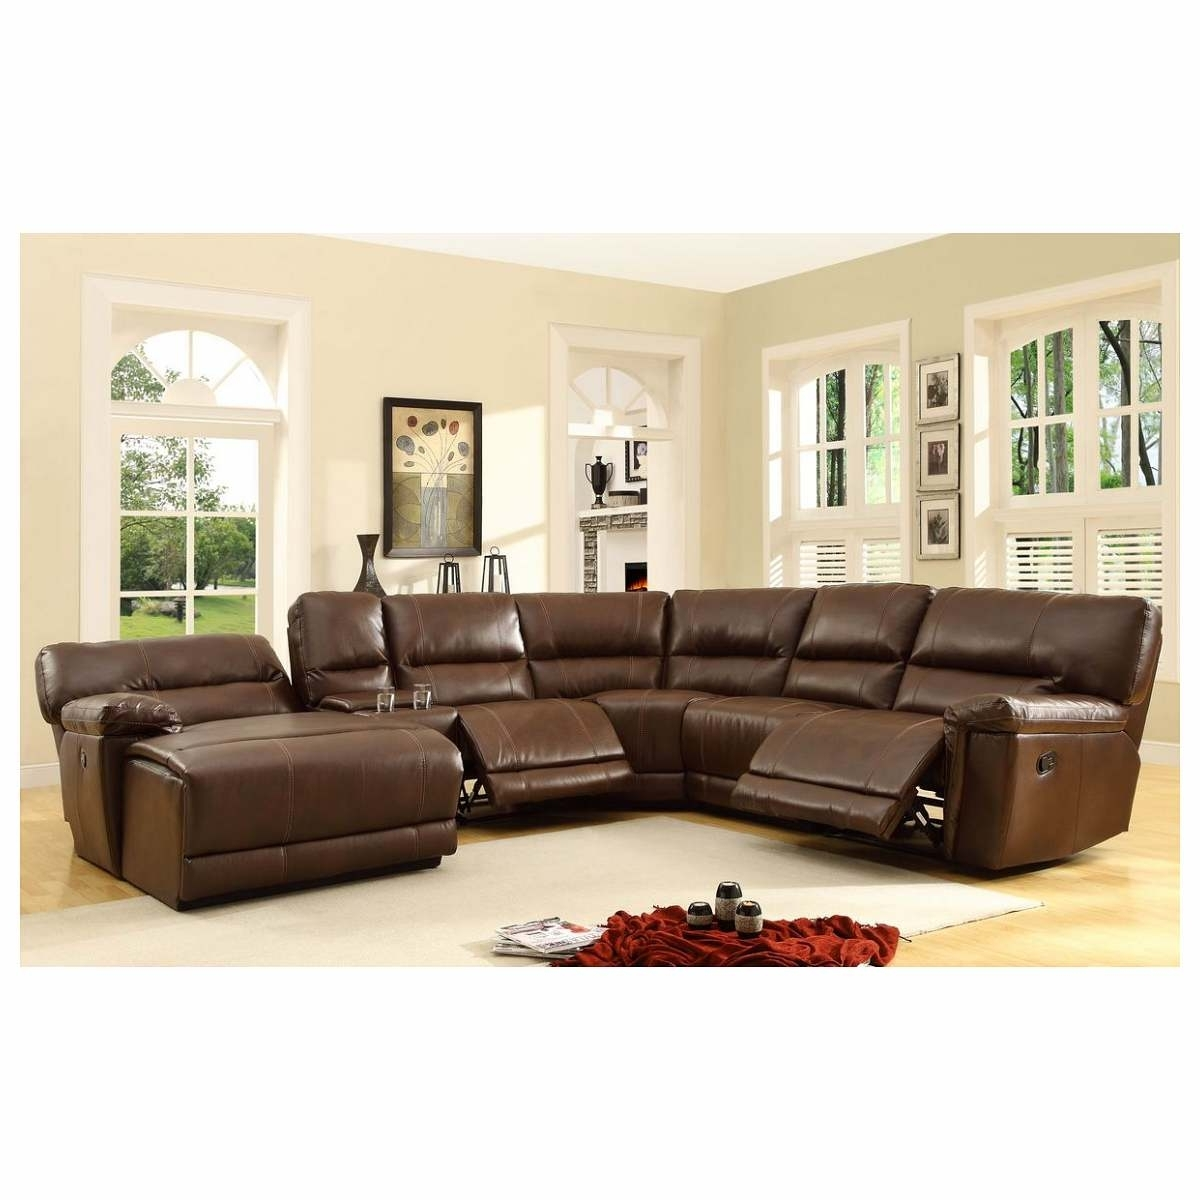 Sectional Sofas At Bad Boy In Favorite 6 Pc Blythe Collection Brown Bonded Leather Match Upholstered (View 10 of 20)